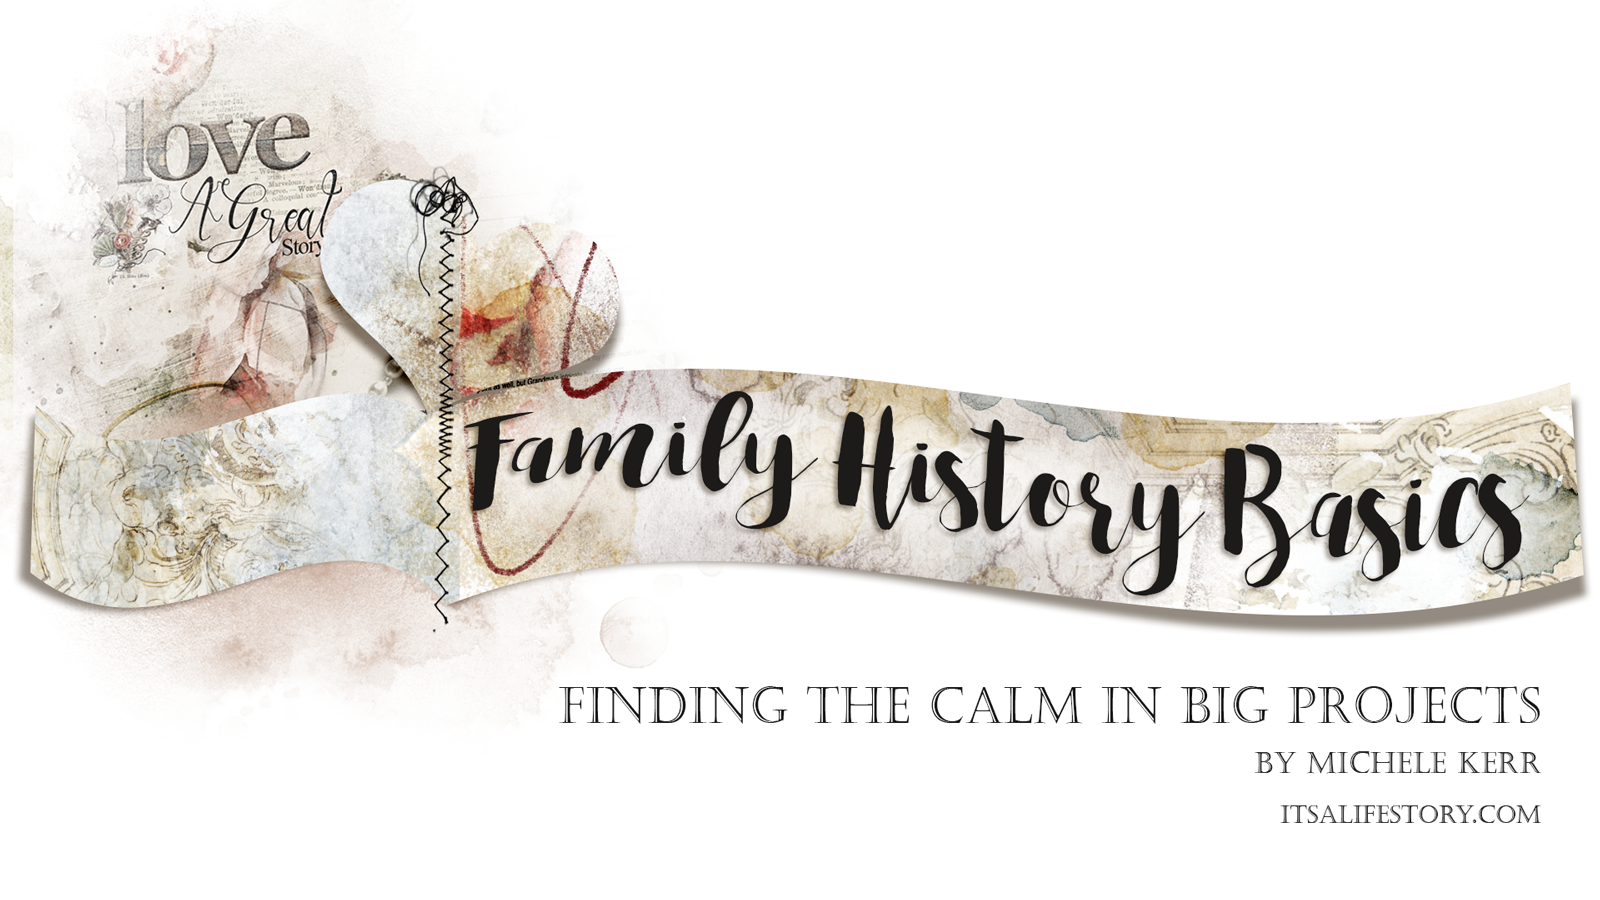 ItsALifeStory.com _ FAMILY HISTORY BASICS - Finding the Calm in Big Projects